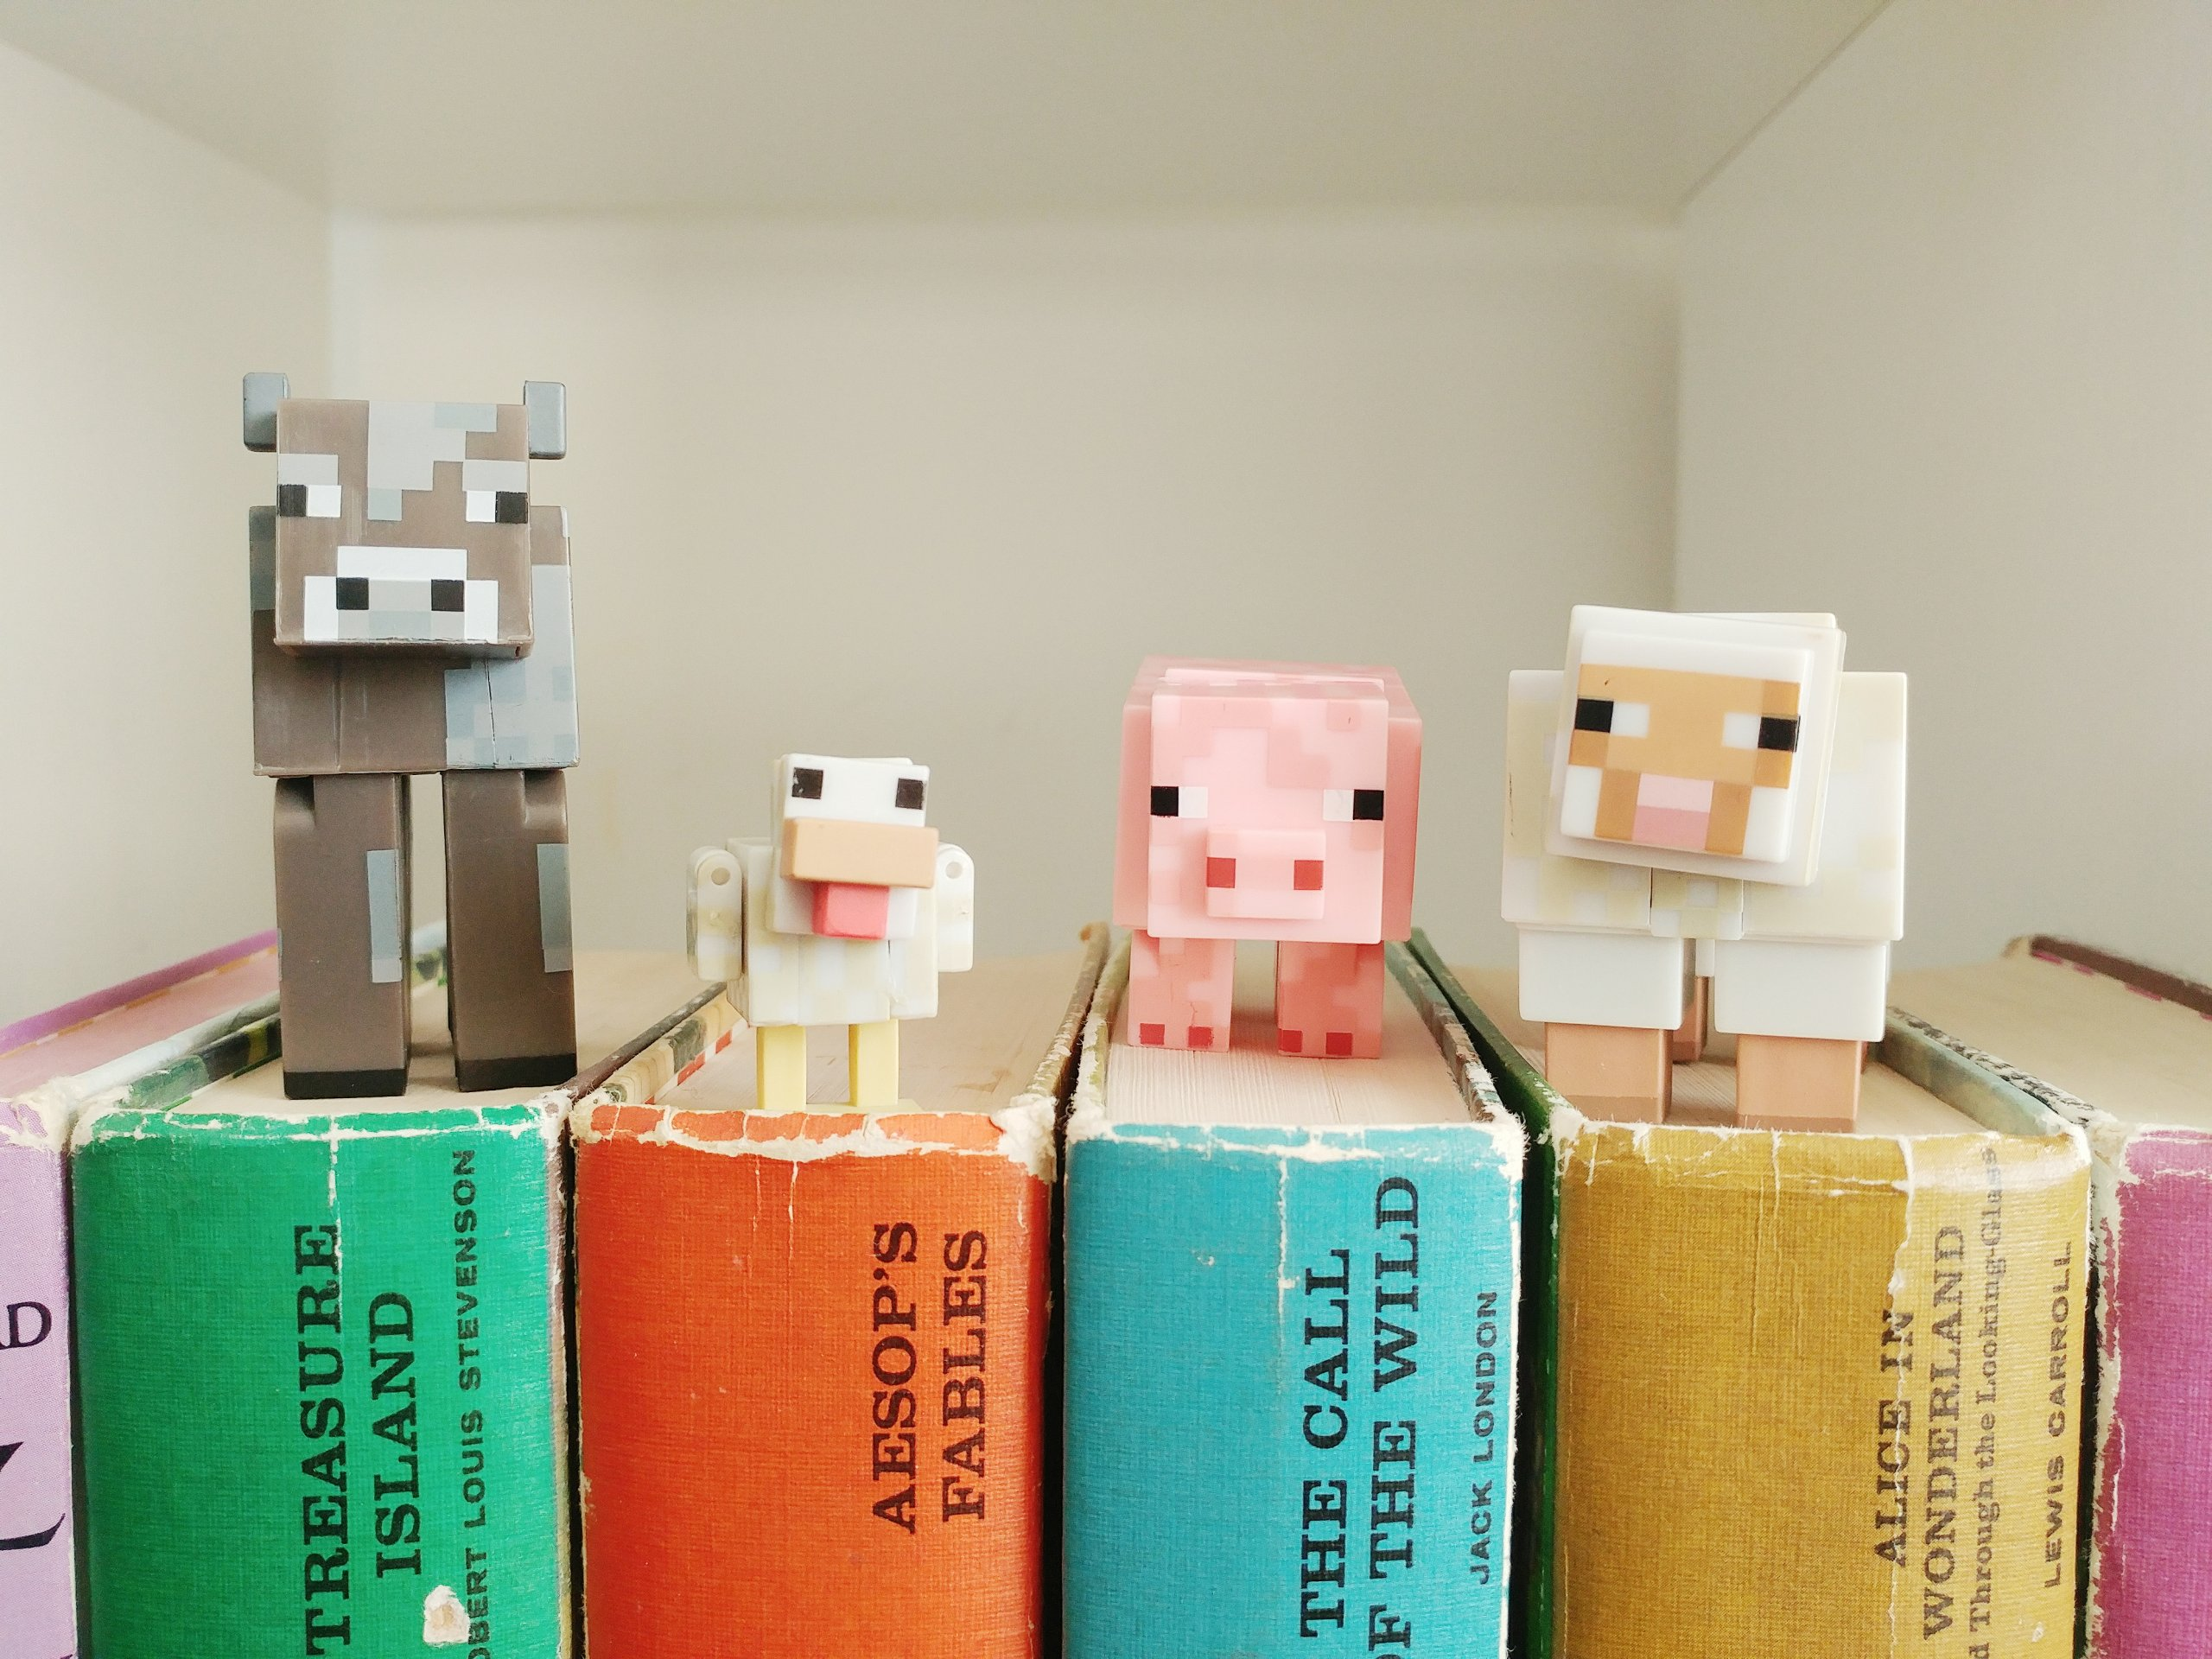 Printable Minecraft Reading Log - free printable reading log to inspire kids to read more!